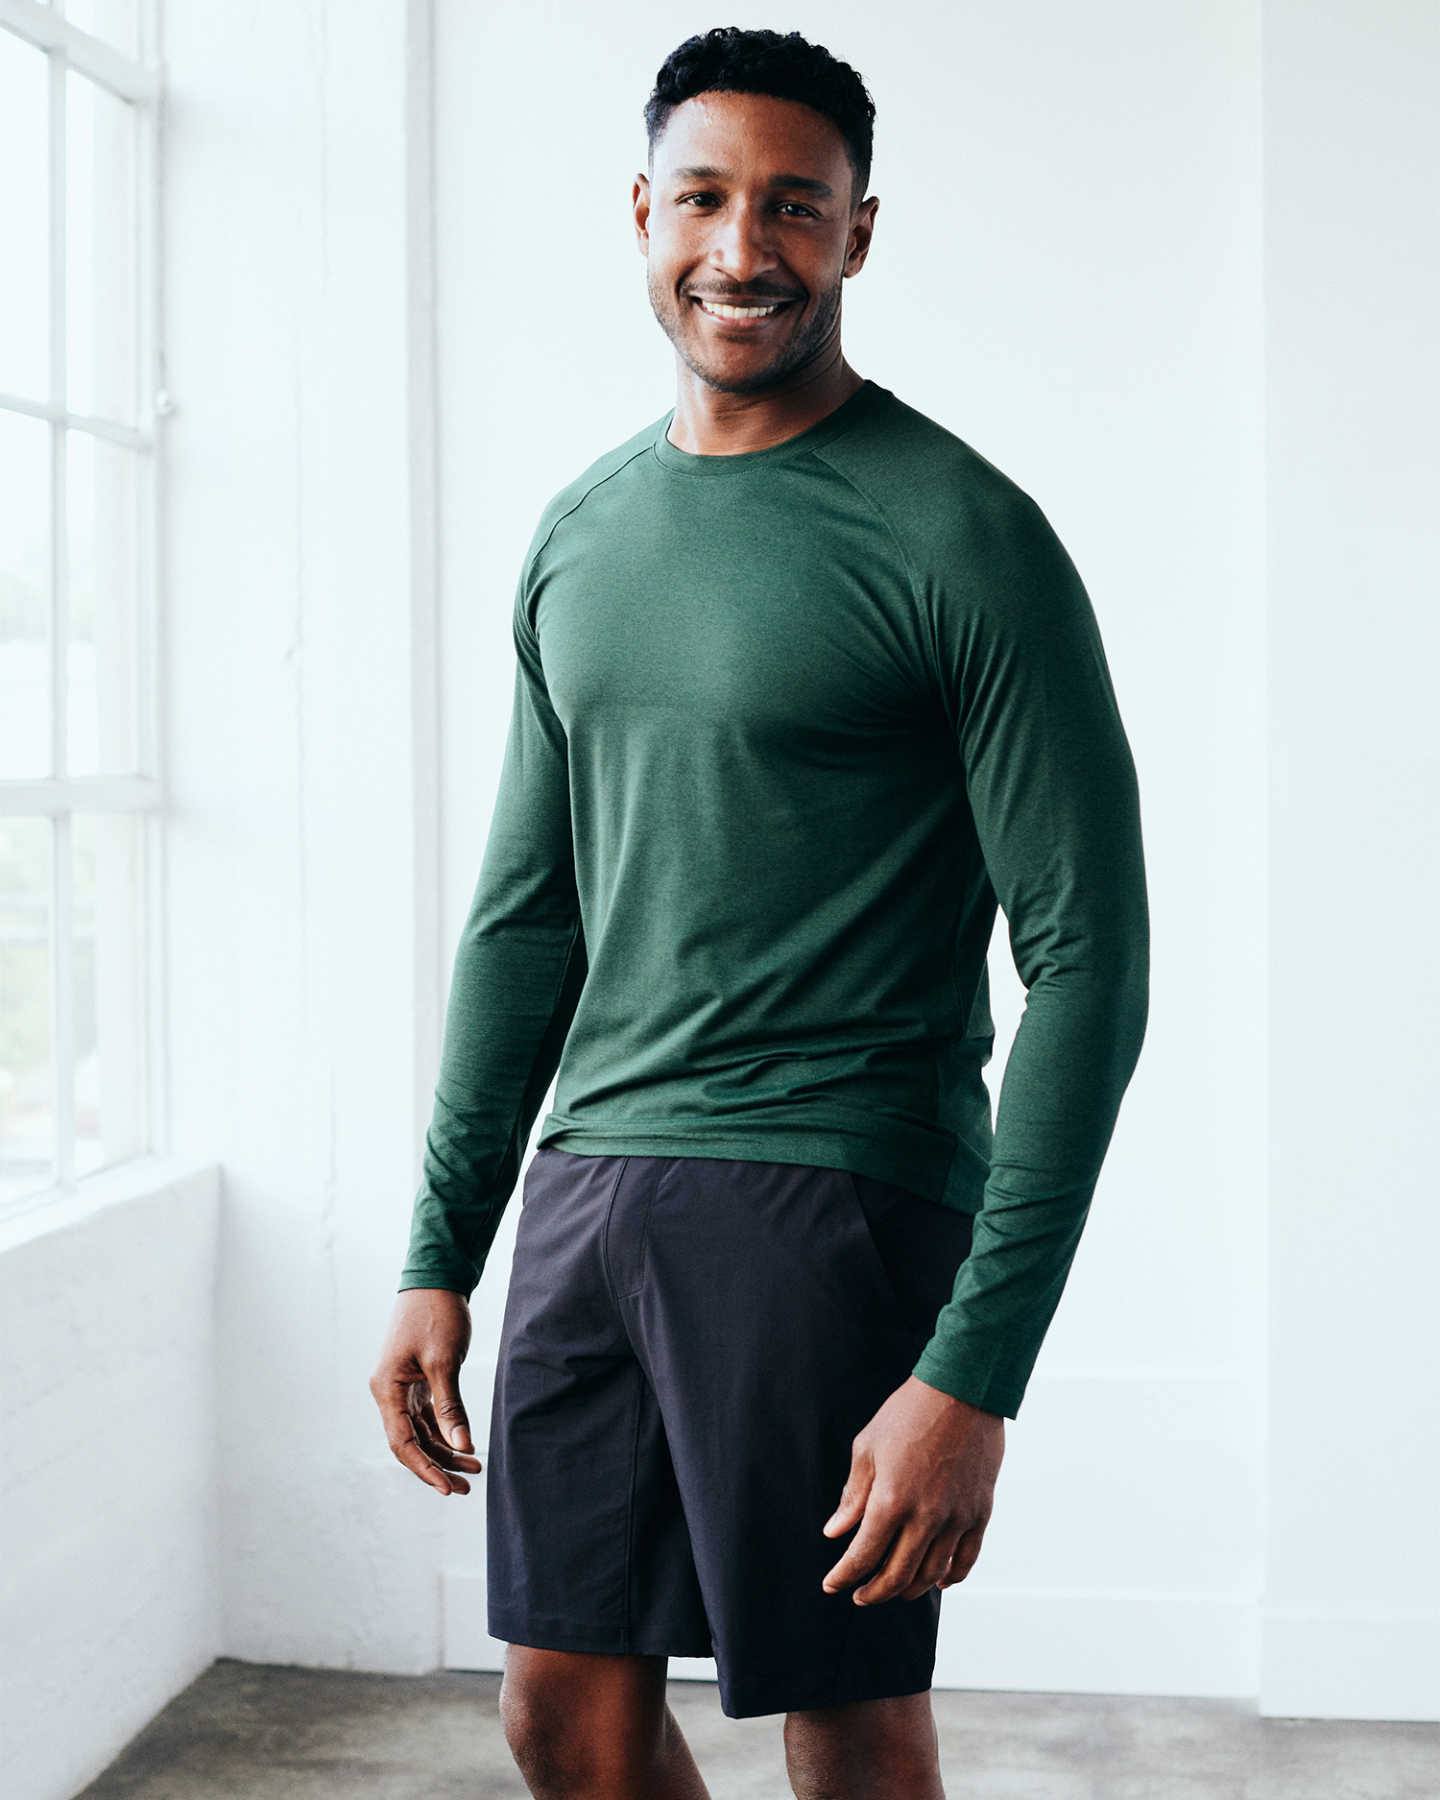 Flowknit Ultra-Soft Performance Long Sleeve Tee - Olive - 0